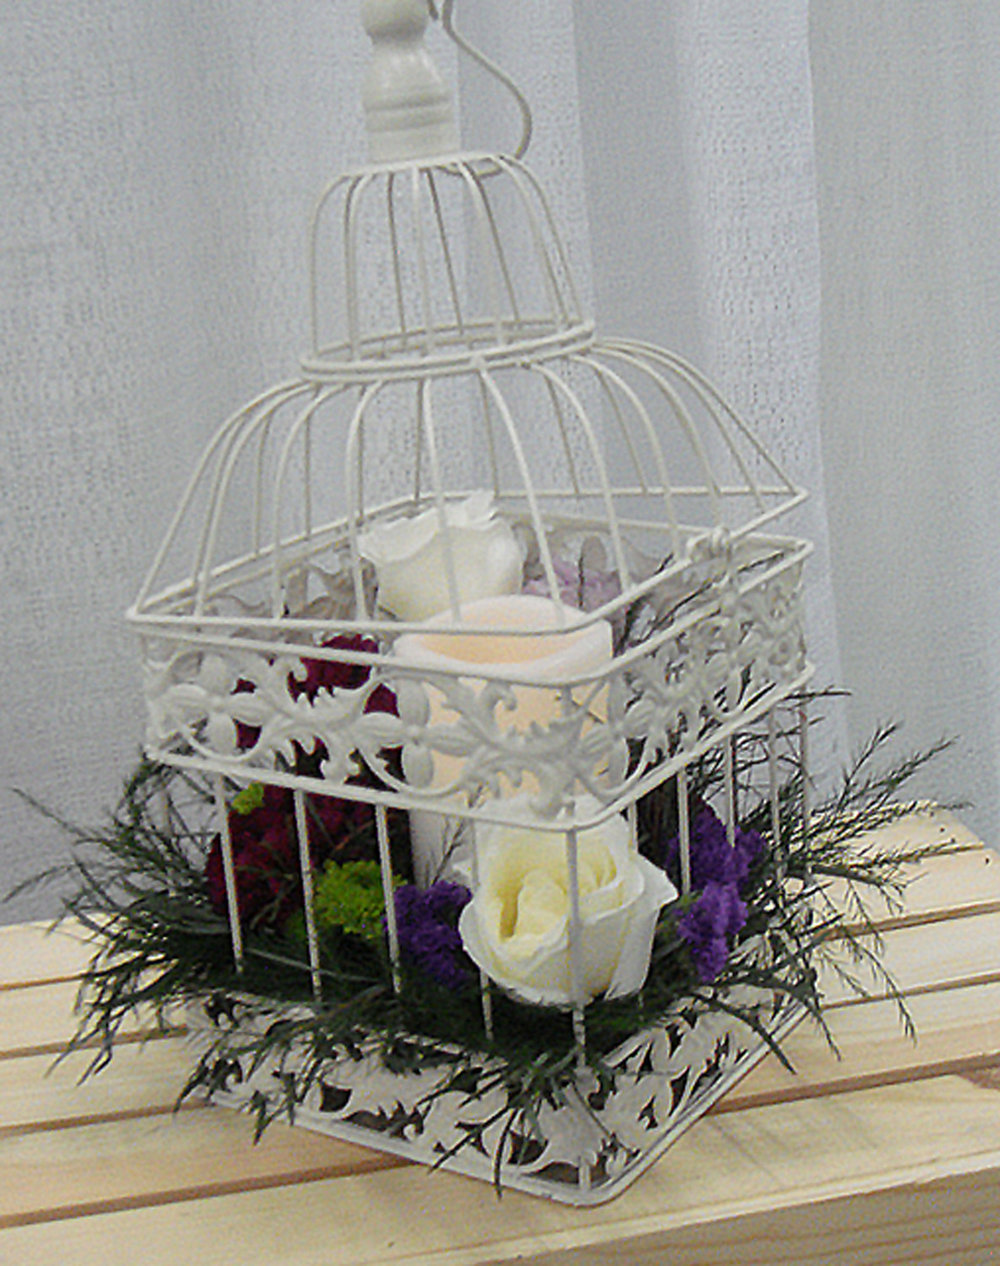 reception / event table centerpiece or accent decor - fresh flowers w/candle in birdcage (can hang or sit on table)